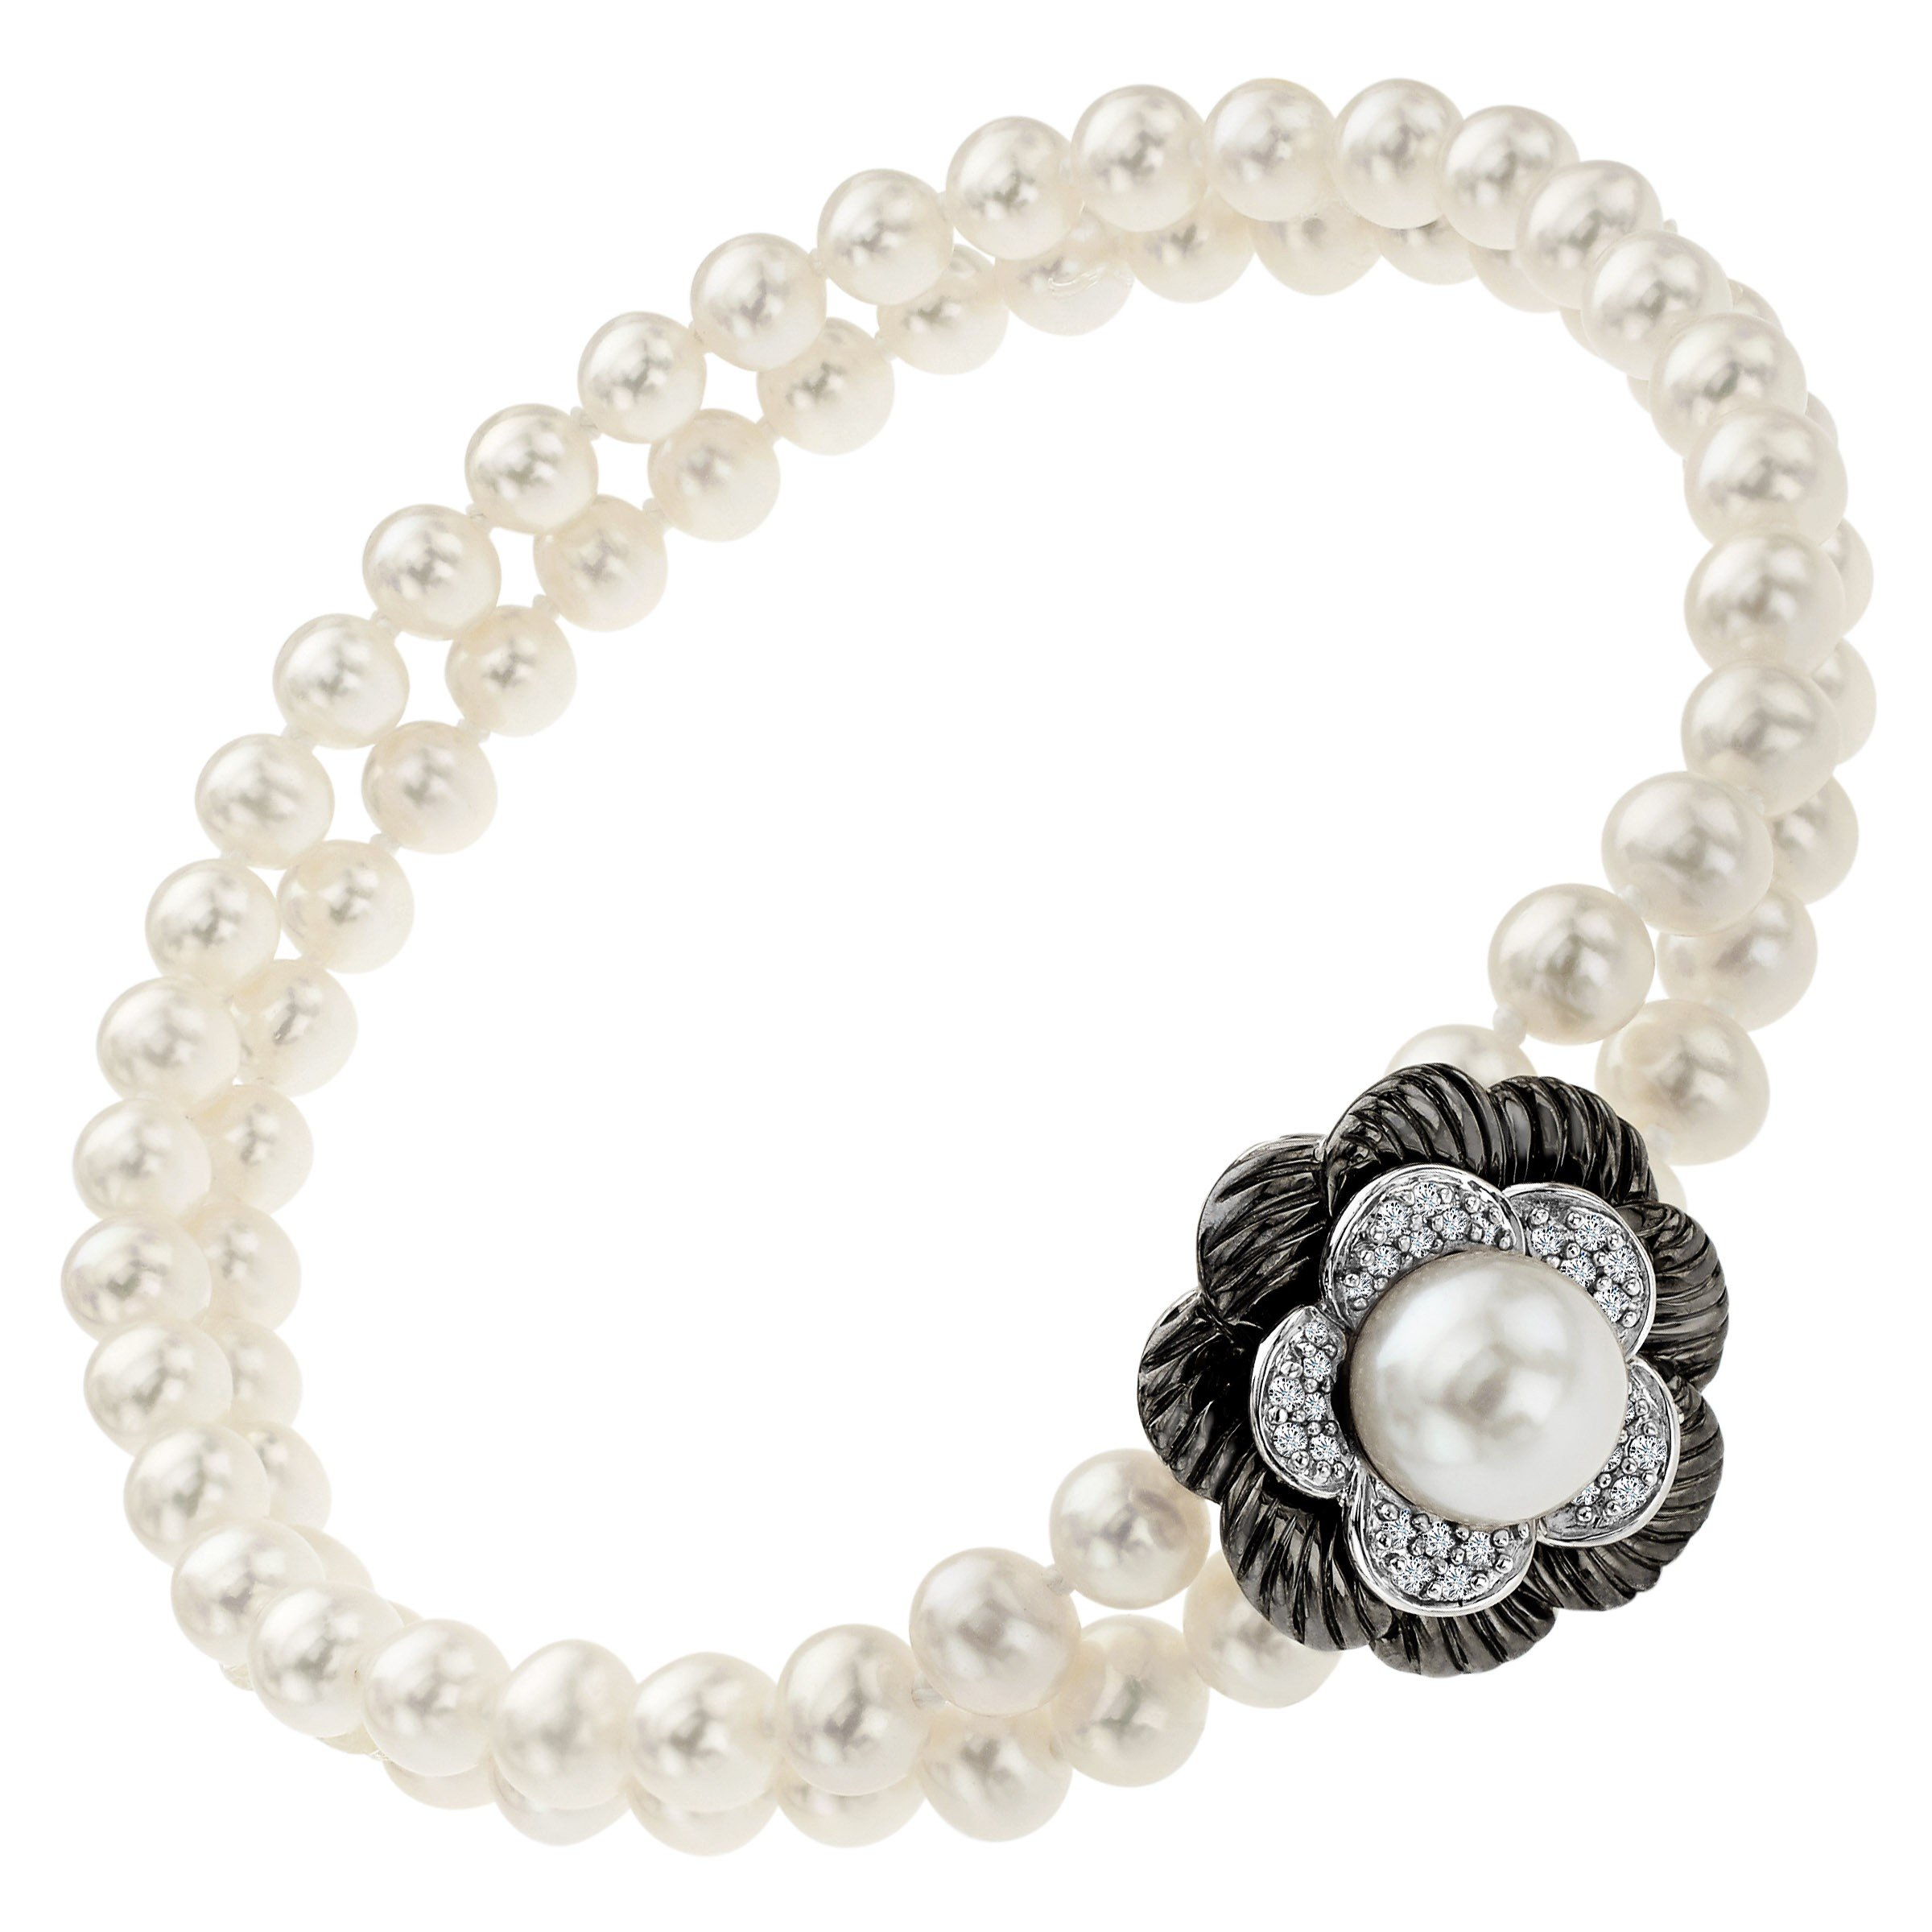 Freshwater Cultured Pearl and 1/8 ct Diamond Flower Bead Bracelet in Sterling Silver